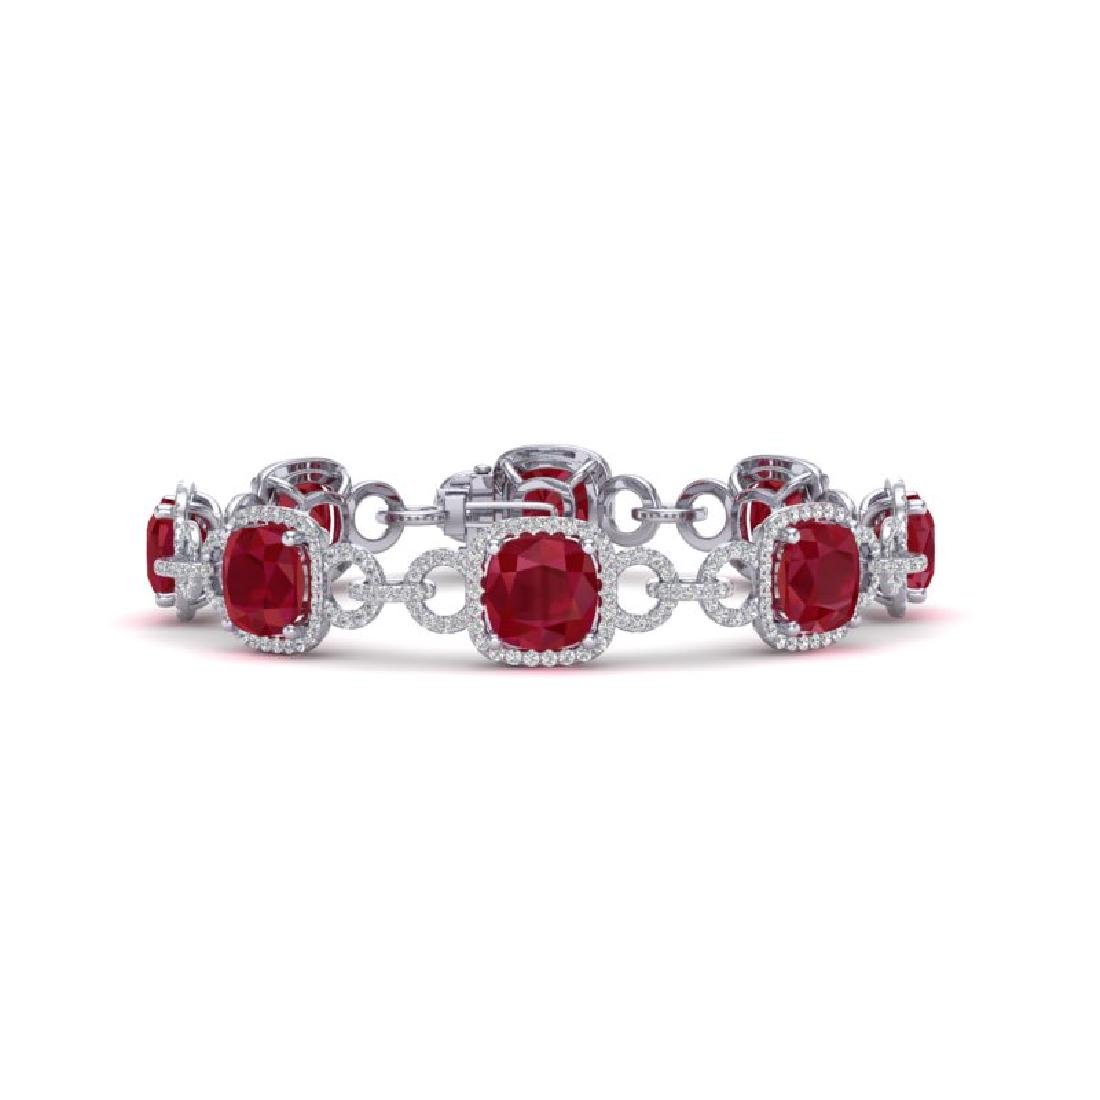 25 CTW Ruby & VS/SI Diamond Bracelet 14K White Gold